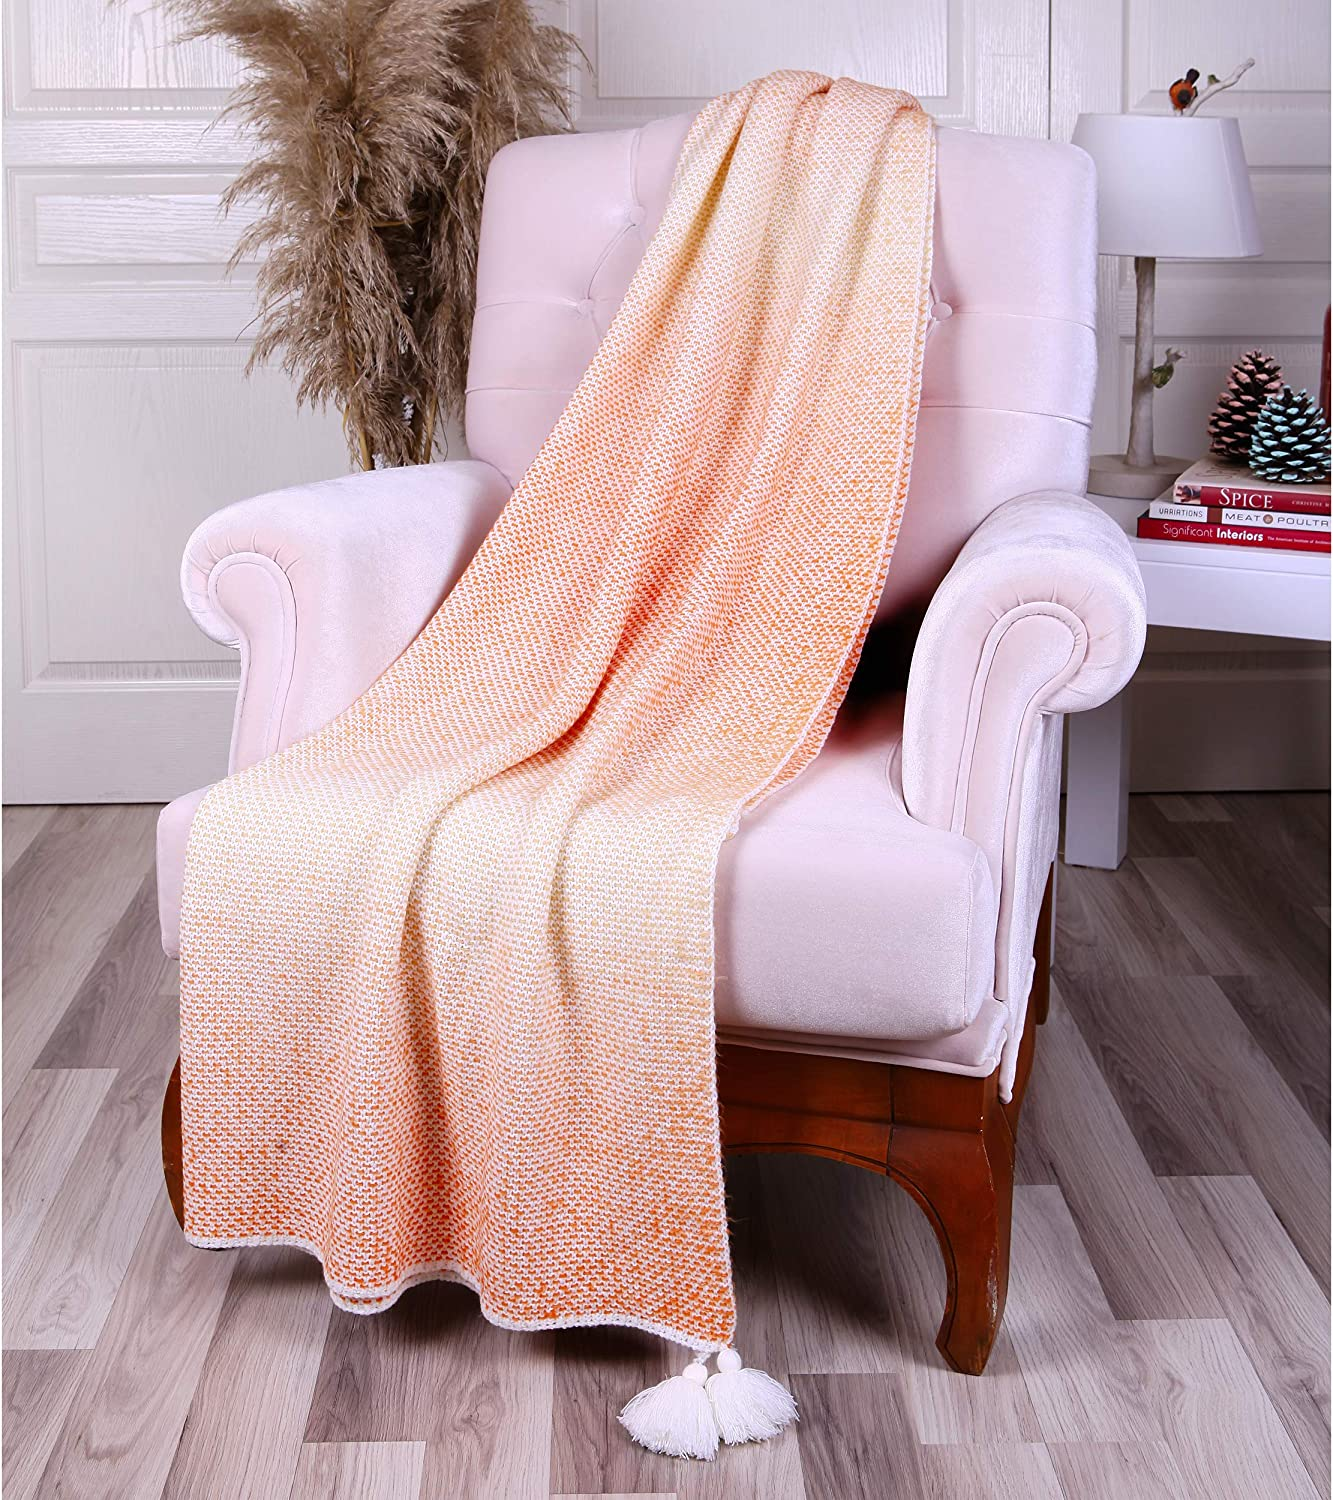 Betires Home Turkish Throw Blanket - Soft, Warm, Breathable Knitted Cover for Couch, Bed, Decor, 51x67